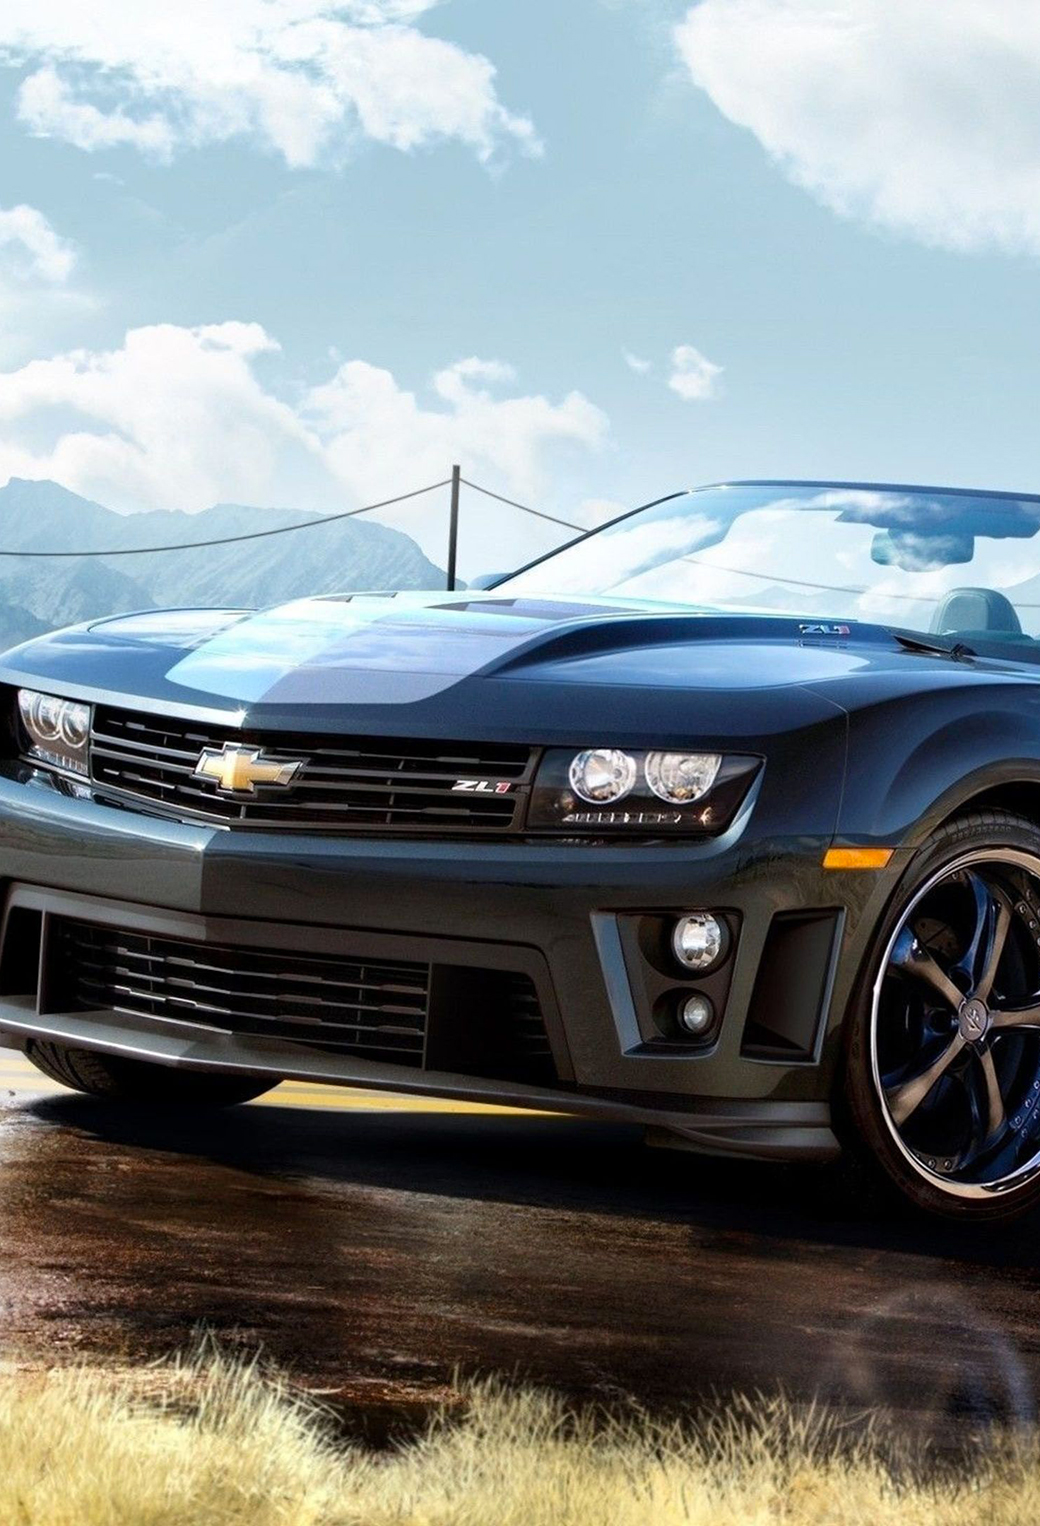 Chevrolet Camaro ZL1 Wallpaper for iPhone X, 8, 7, 6